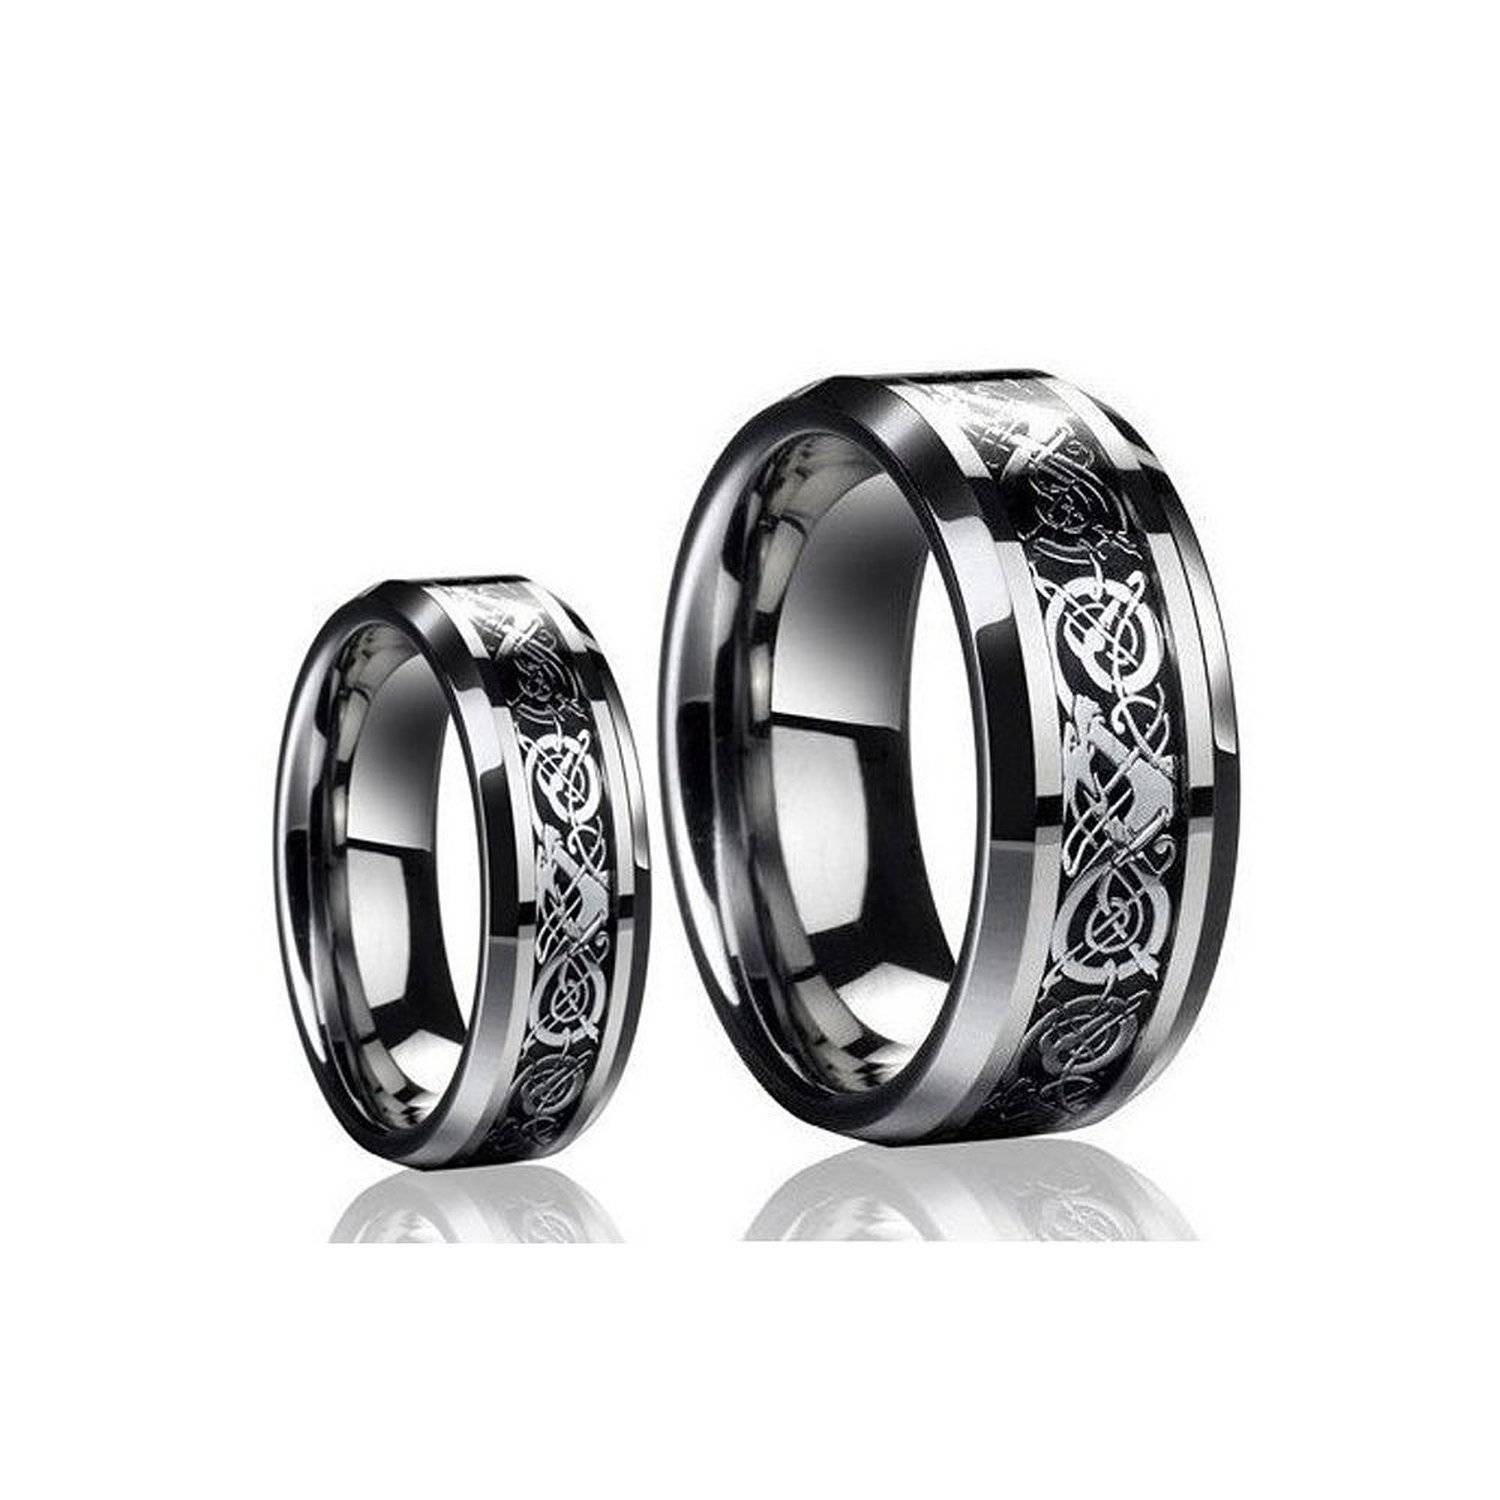 51 Black Wedding Band Sets, Black Stainless Steel Titanium Wedding Throughout Tungsten Titanium Wedding Bands (View 2 of 15)